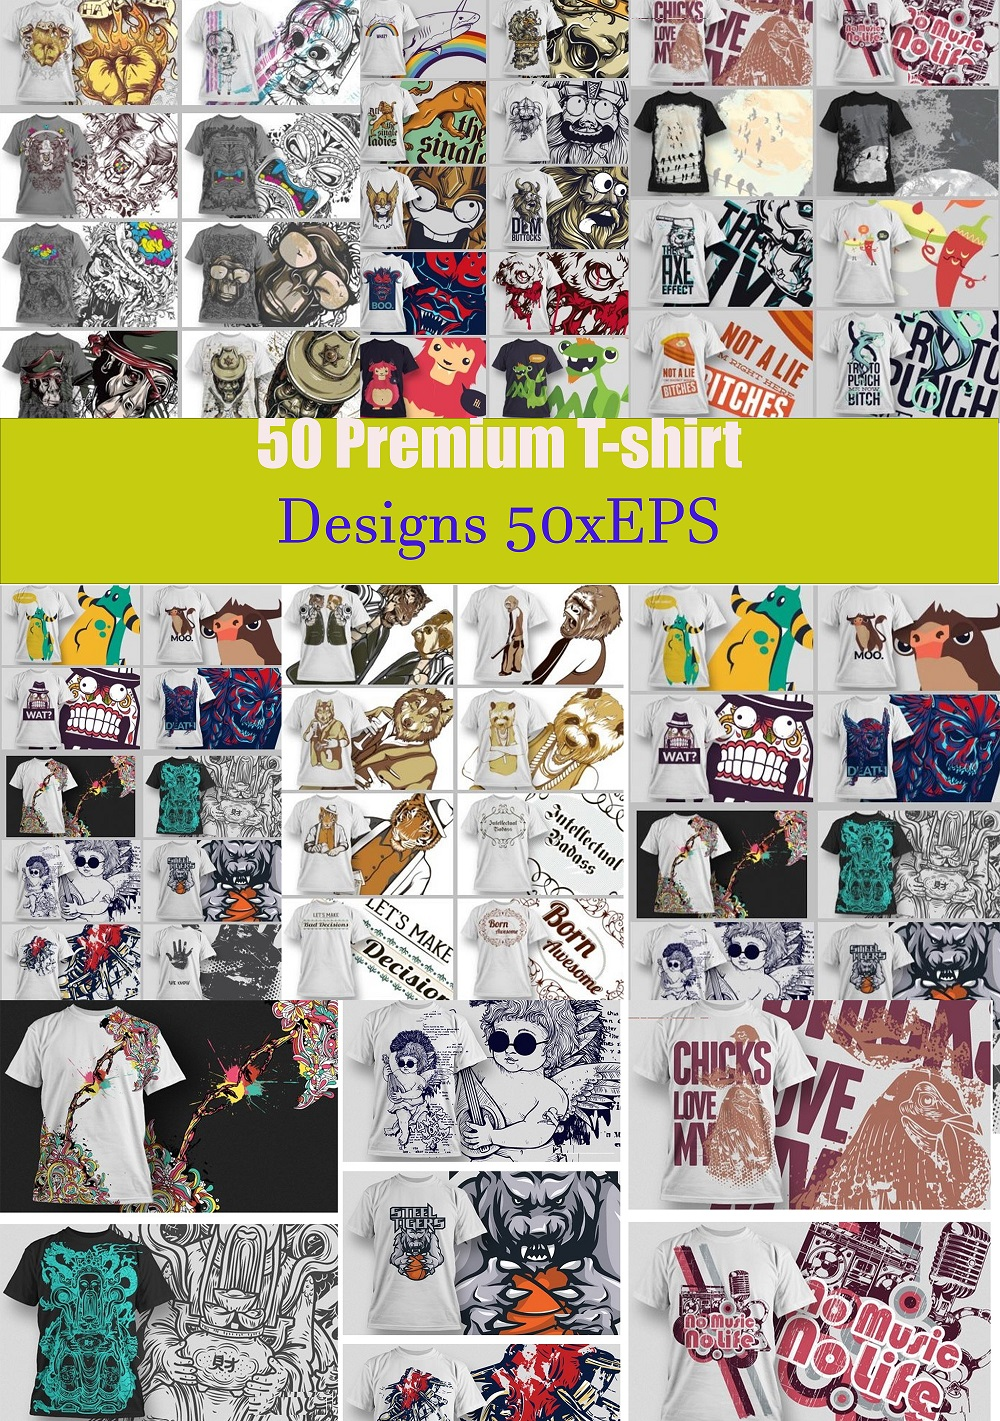 I will give you 50 premium tshirt designs